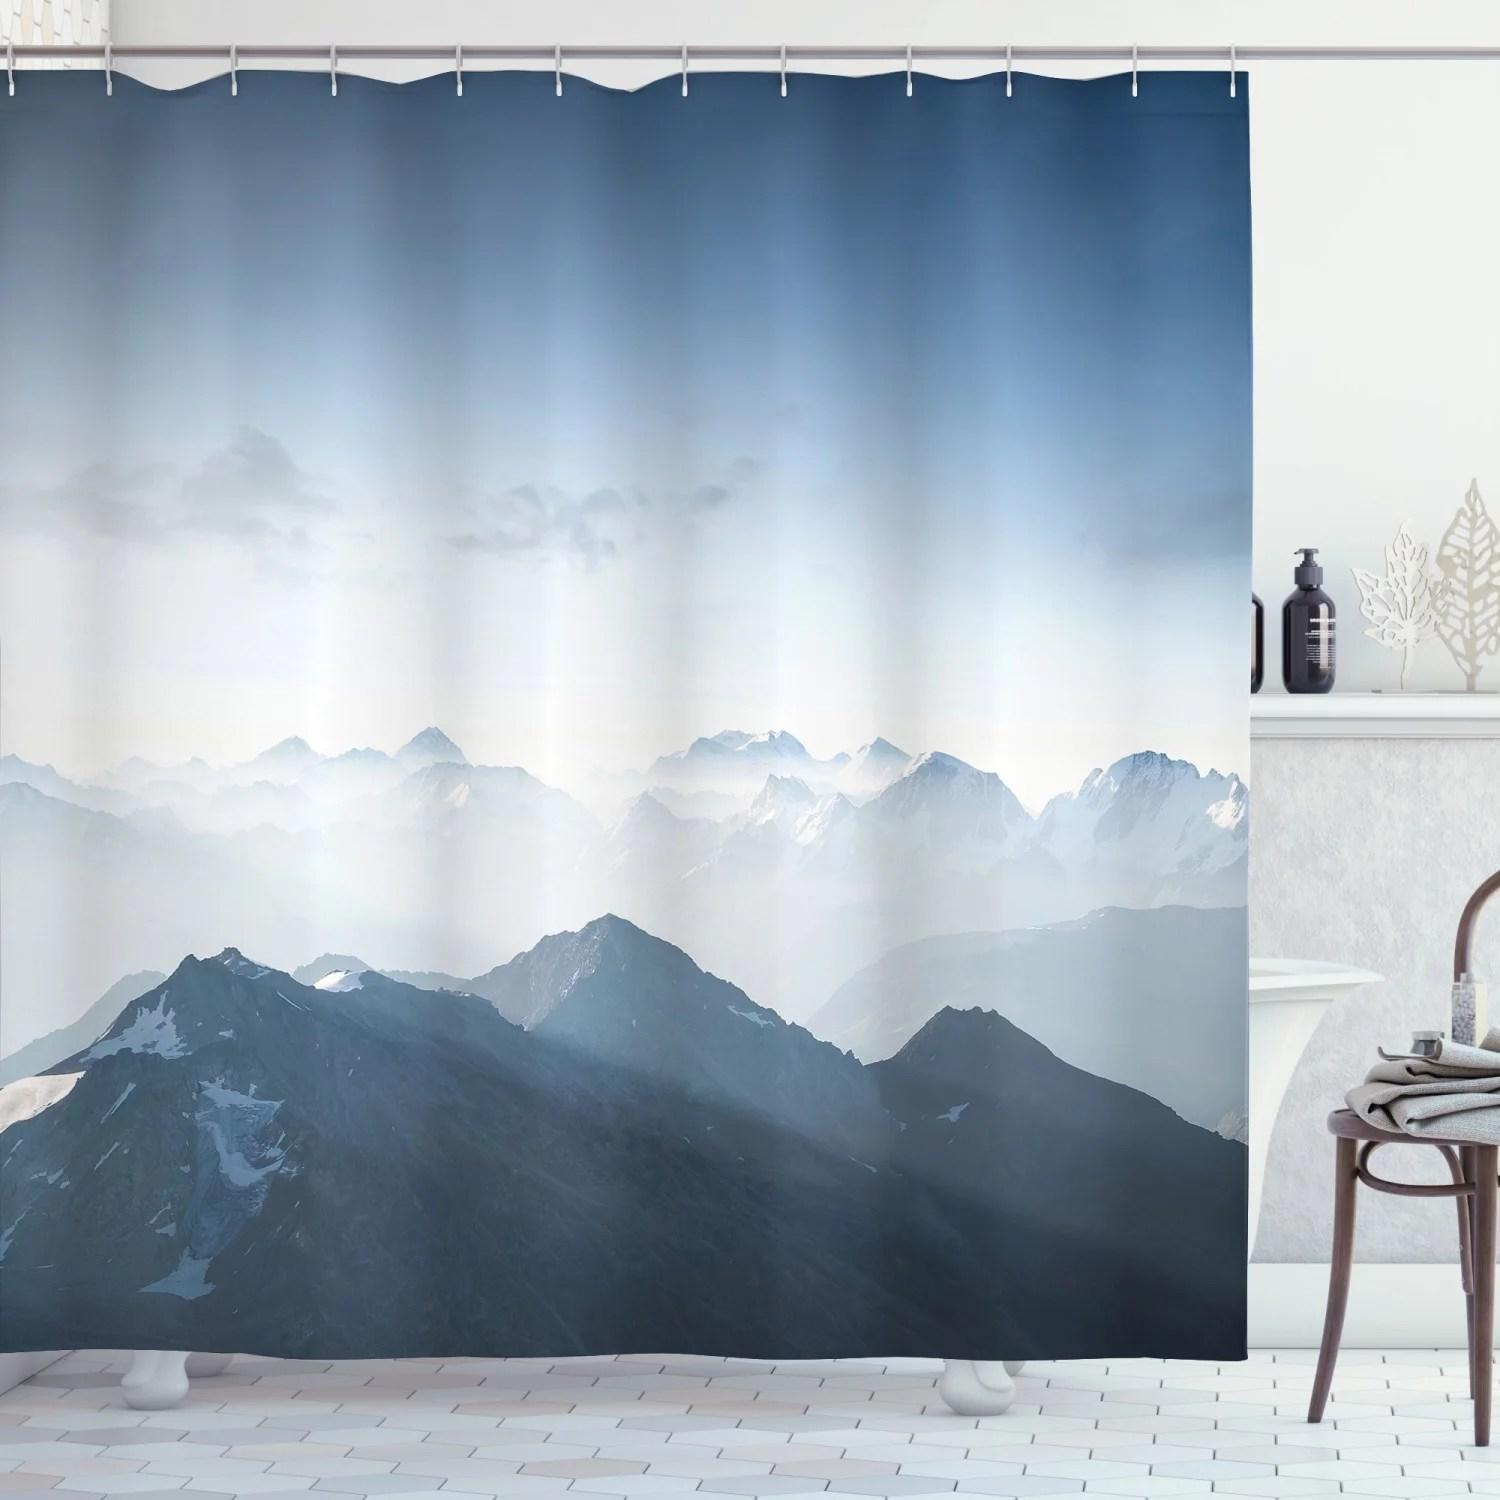 mountain shower curtain foggy scenic morning in rock mountain region in northern hiking climbing ice photo fabric bathroom set with hooks pale